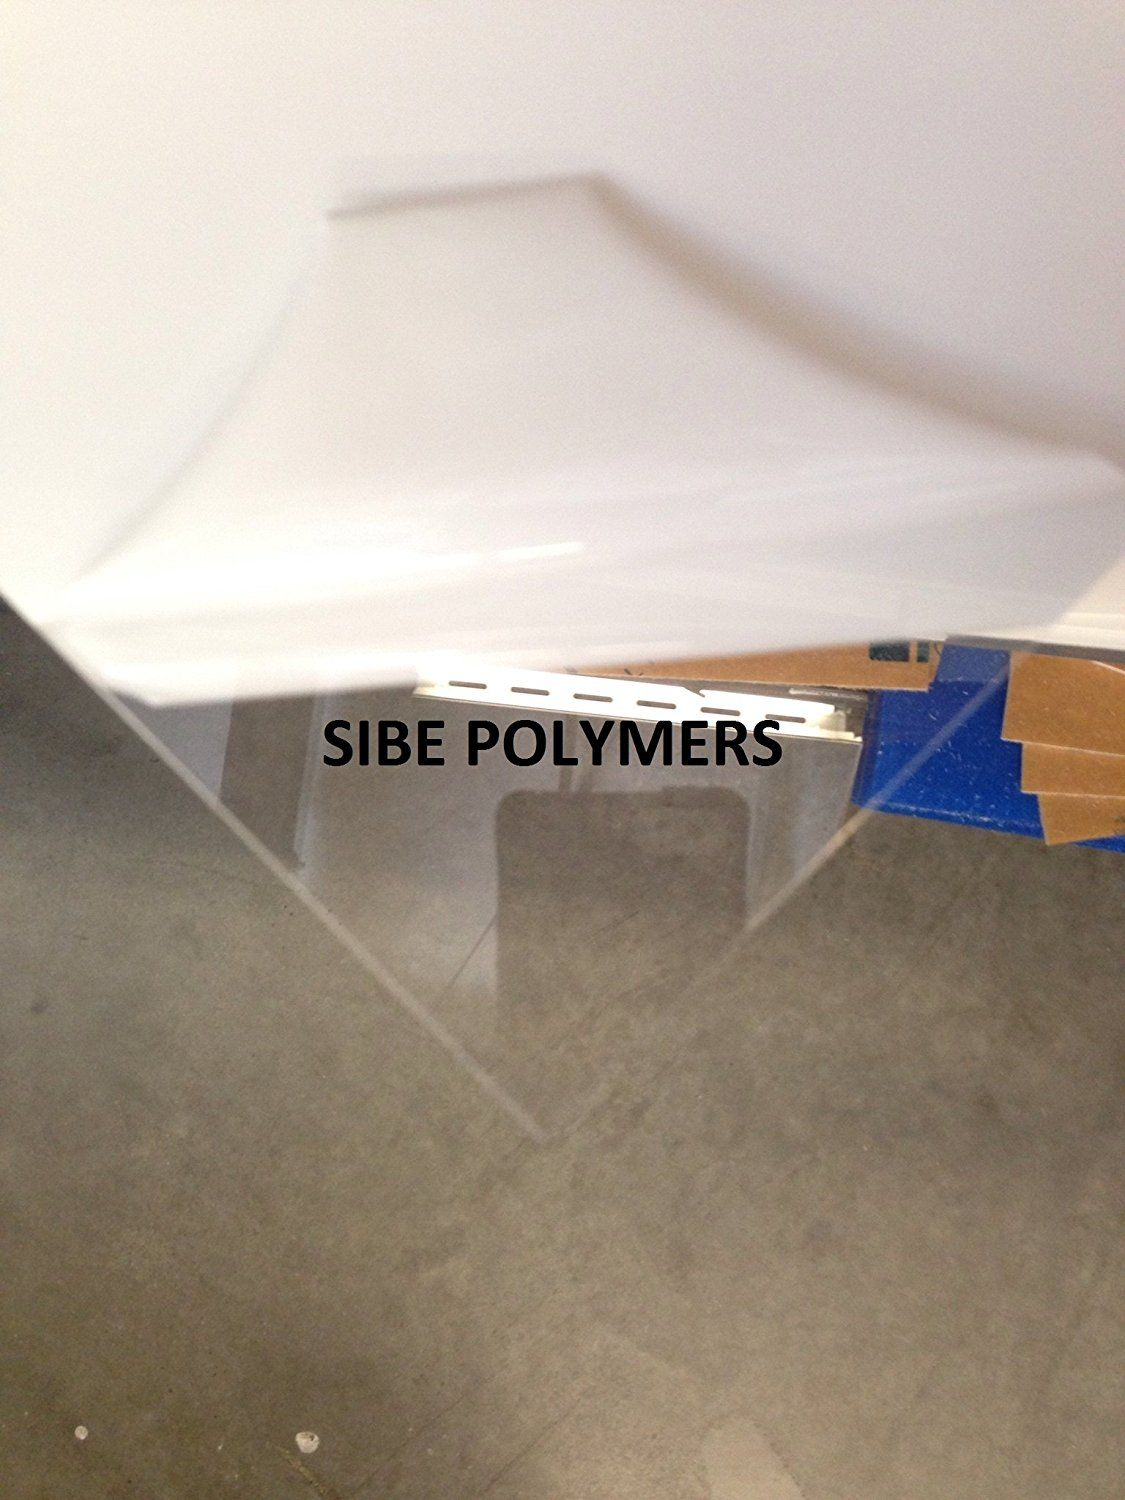 Sibe R Plastic Supply Clear Acrylic Plexiglass 24 X48 1 16 0 060 Plastic Sheets Clear Acrylic Acrylic Plastic Sheets